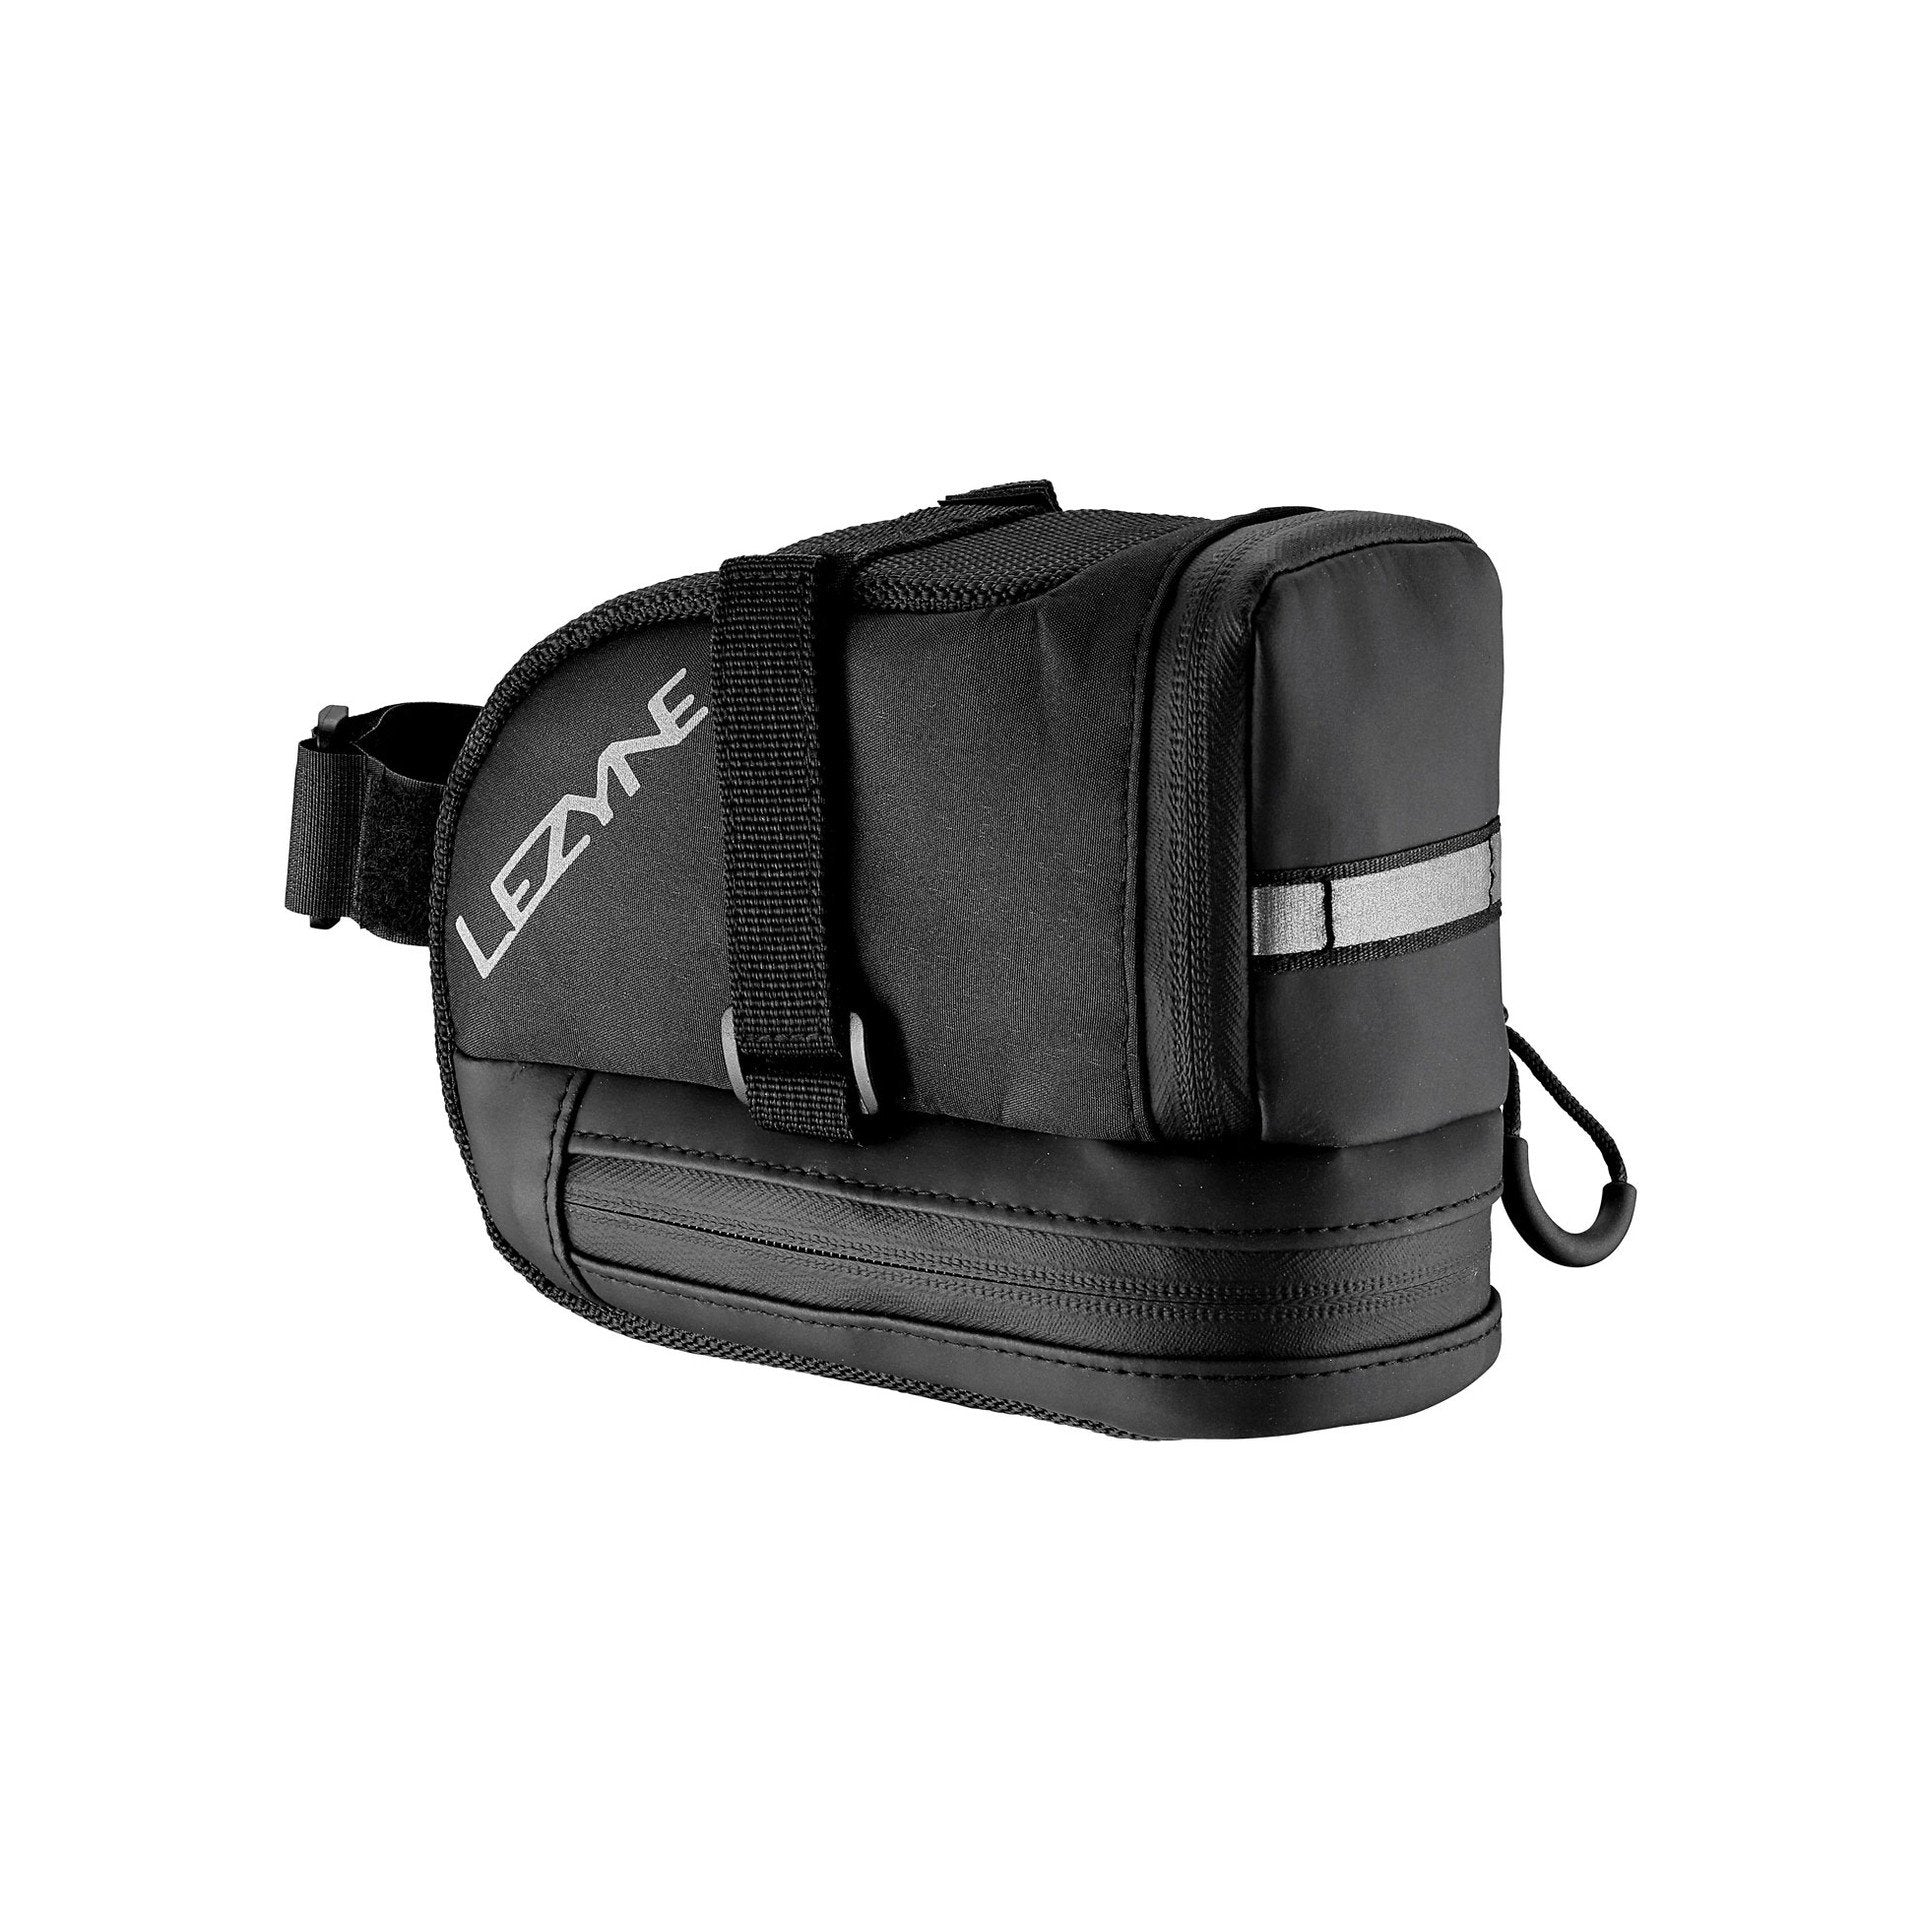 Lezyne - L-Caddy Saddle Bag-Bike Accessories-Kunstadt Sports